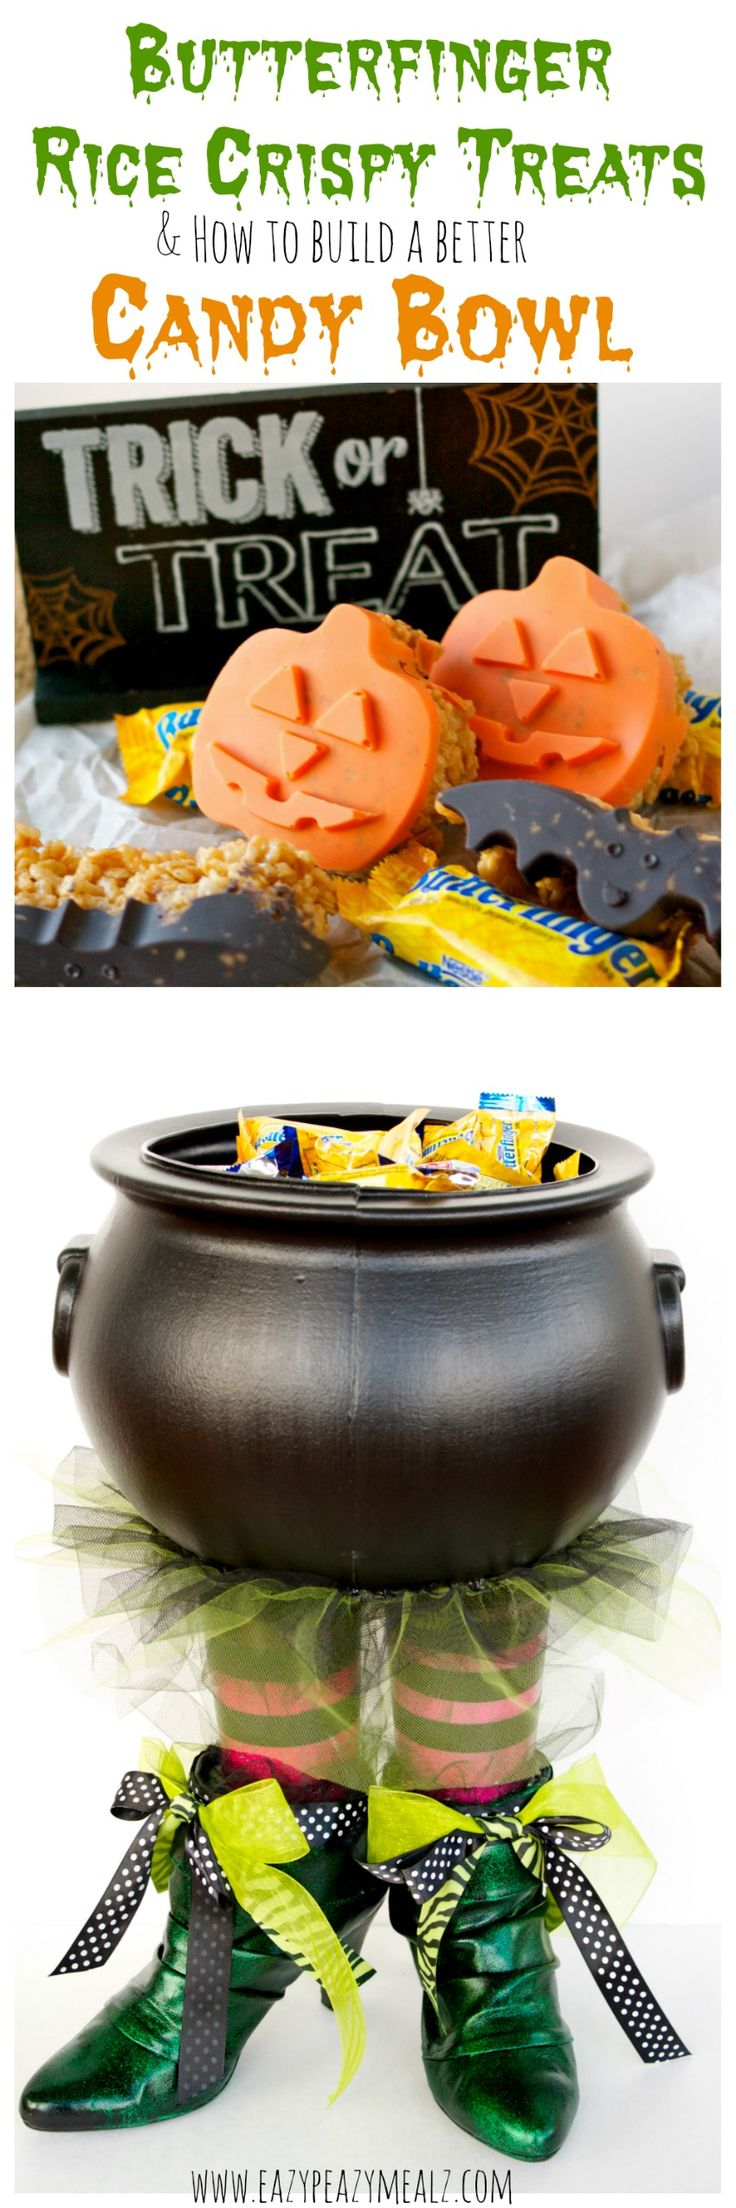 Butterfinger Halloween Rice Crispy Treats & How to Build A Better Candy Bowl - Eazy Peazy Mealz